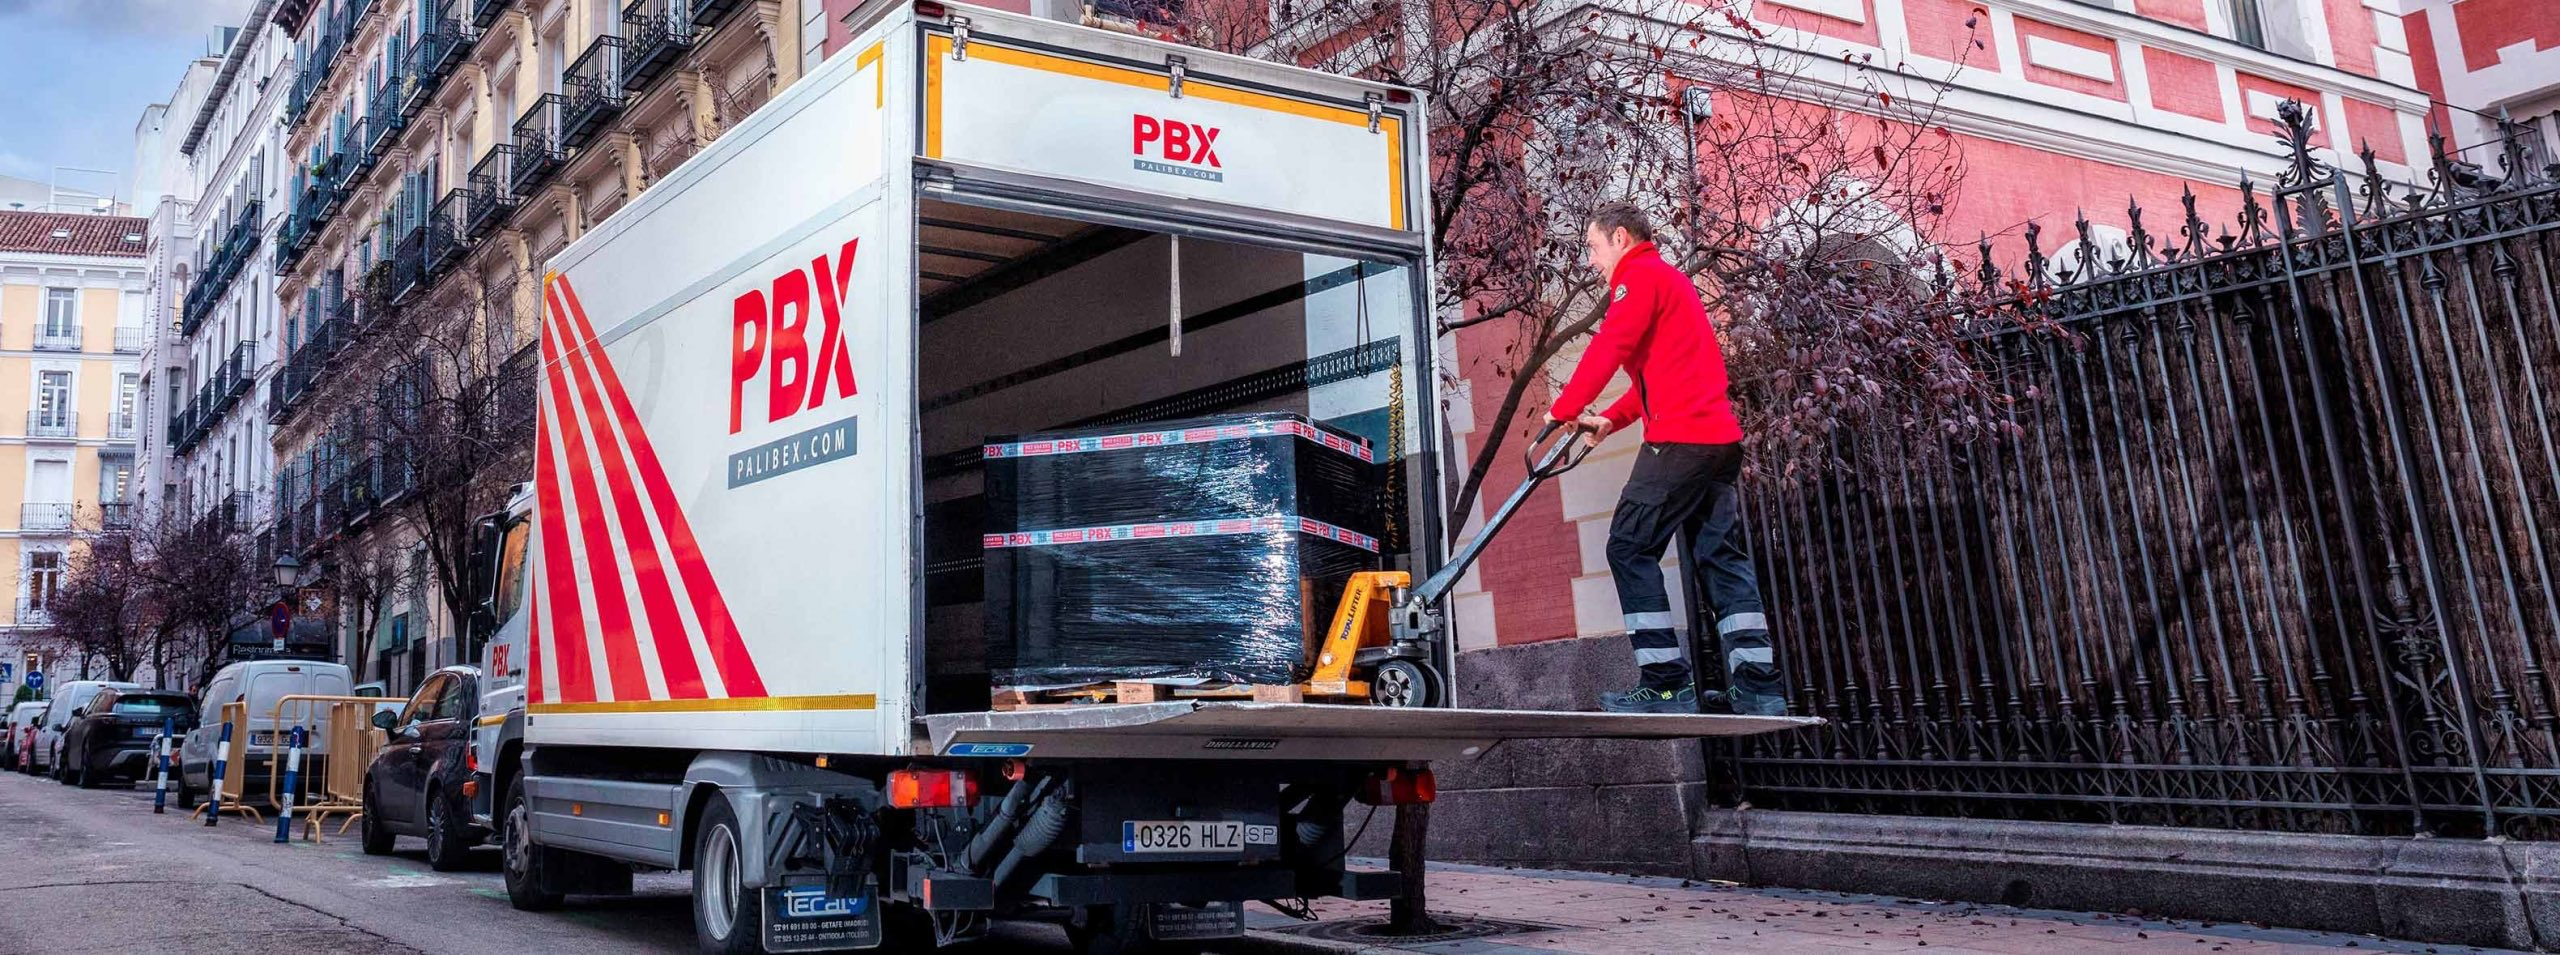 saturday pallet deliveries in Spain - Palibex